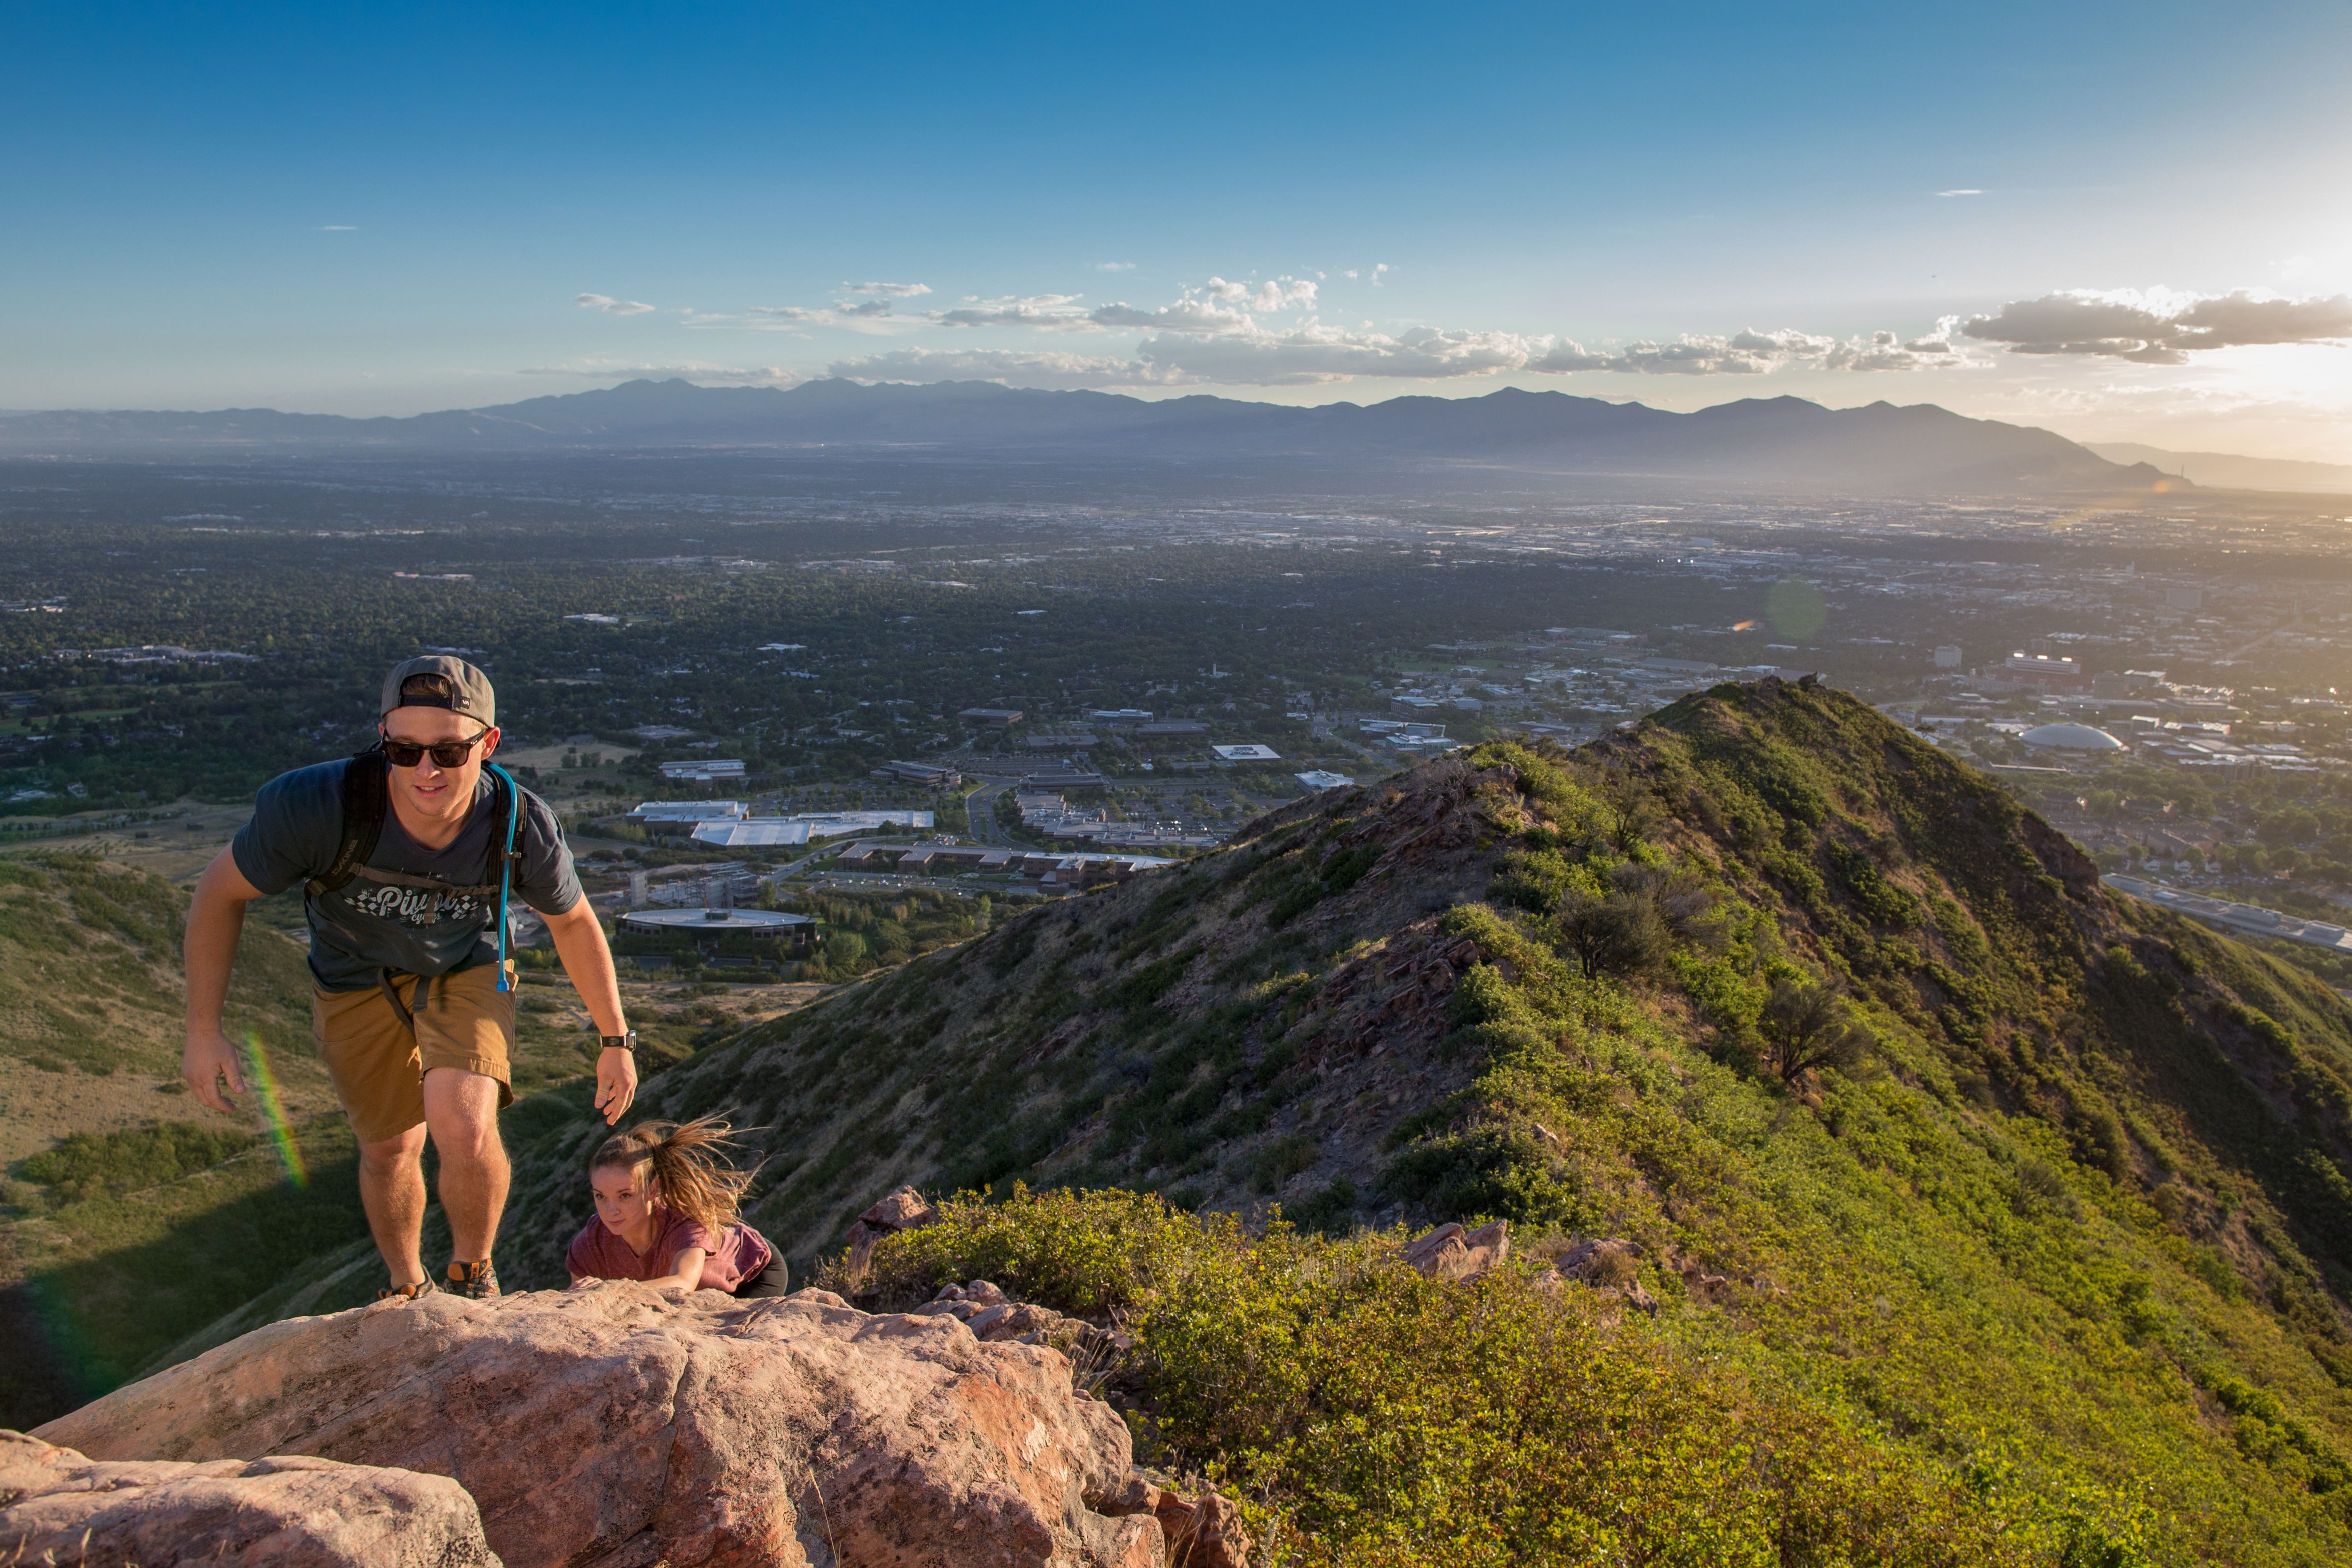 The Living Room Trail (with Red Butte Extension) Is A Mile Out And Back  Moderate Hiking Trail Located Near Salt Lake City, Utah That Features  Beautiful Wild ... Part 27